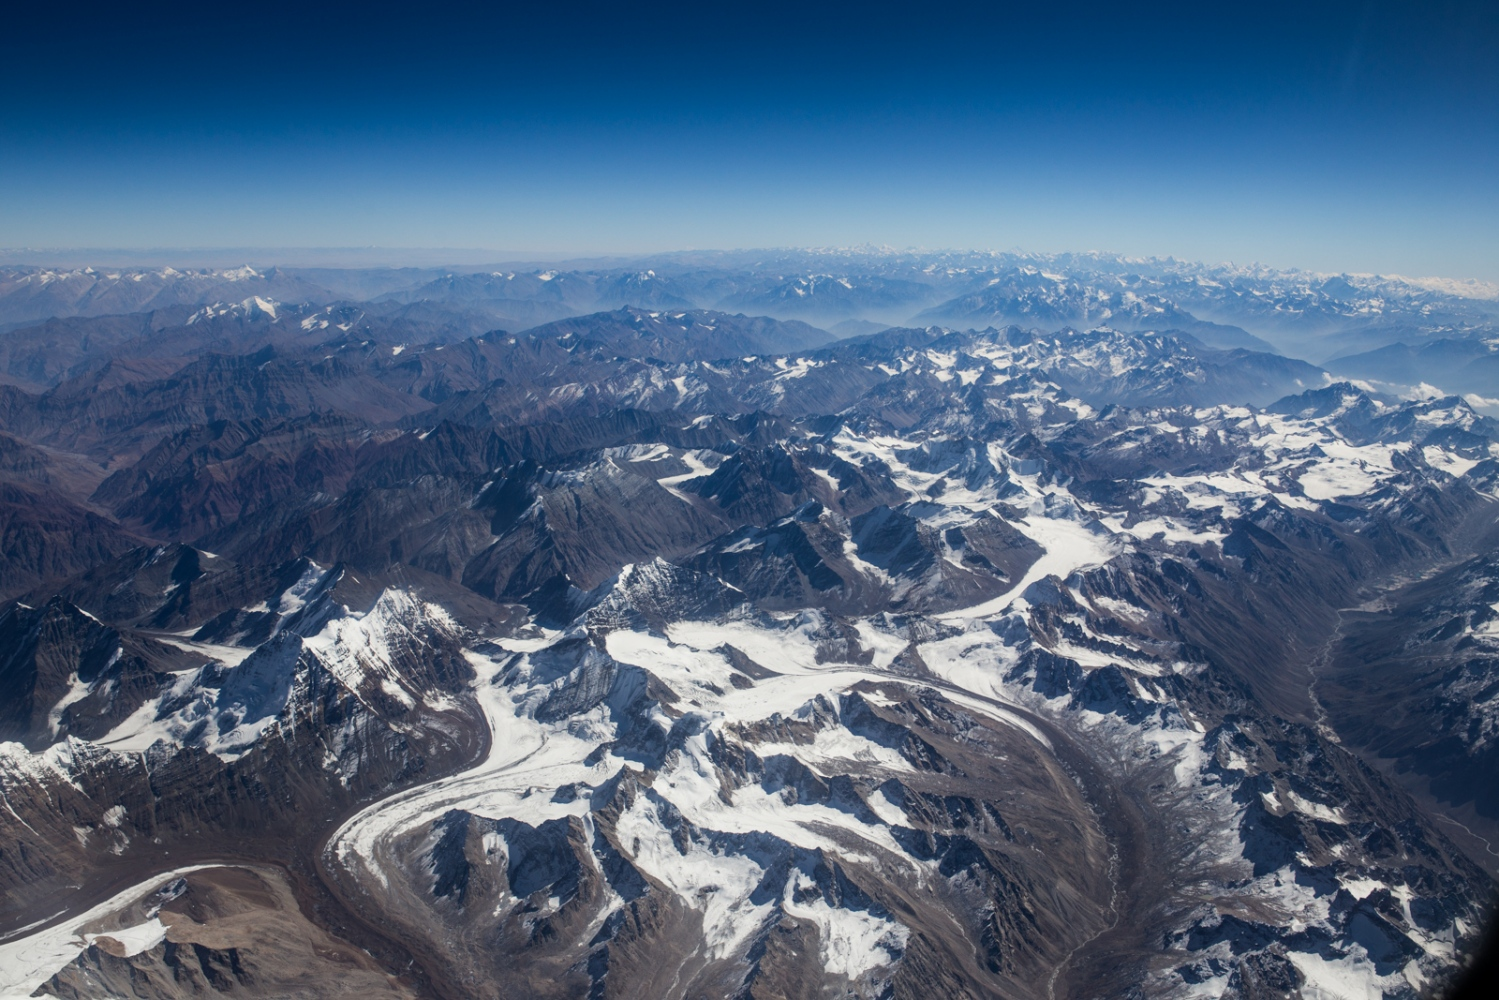 Arial photo of retreating Himalayan glaciers. The Himalayas is one of the fatest warming regions on the planet, excluding the arctic. The thawing of ice is one of the surest signs of a warming climateregime.